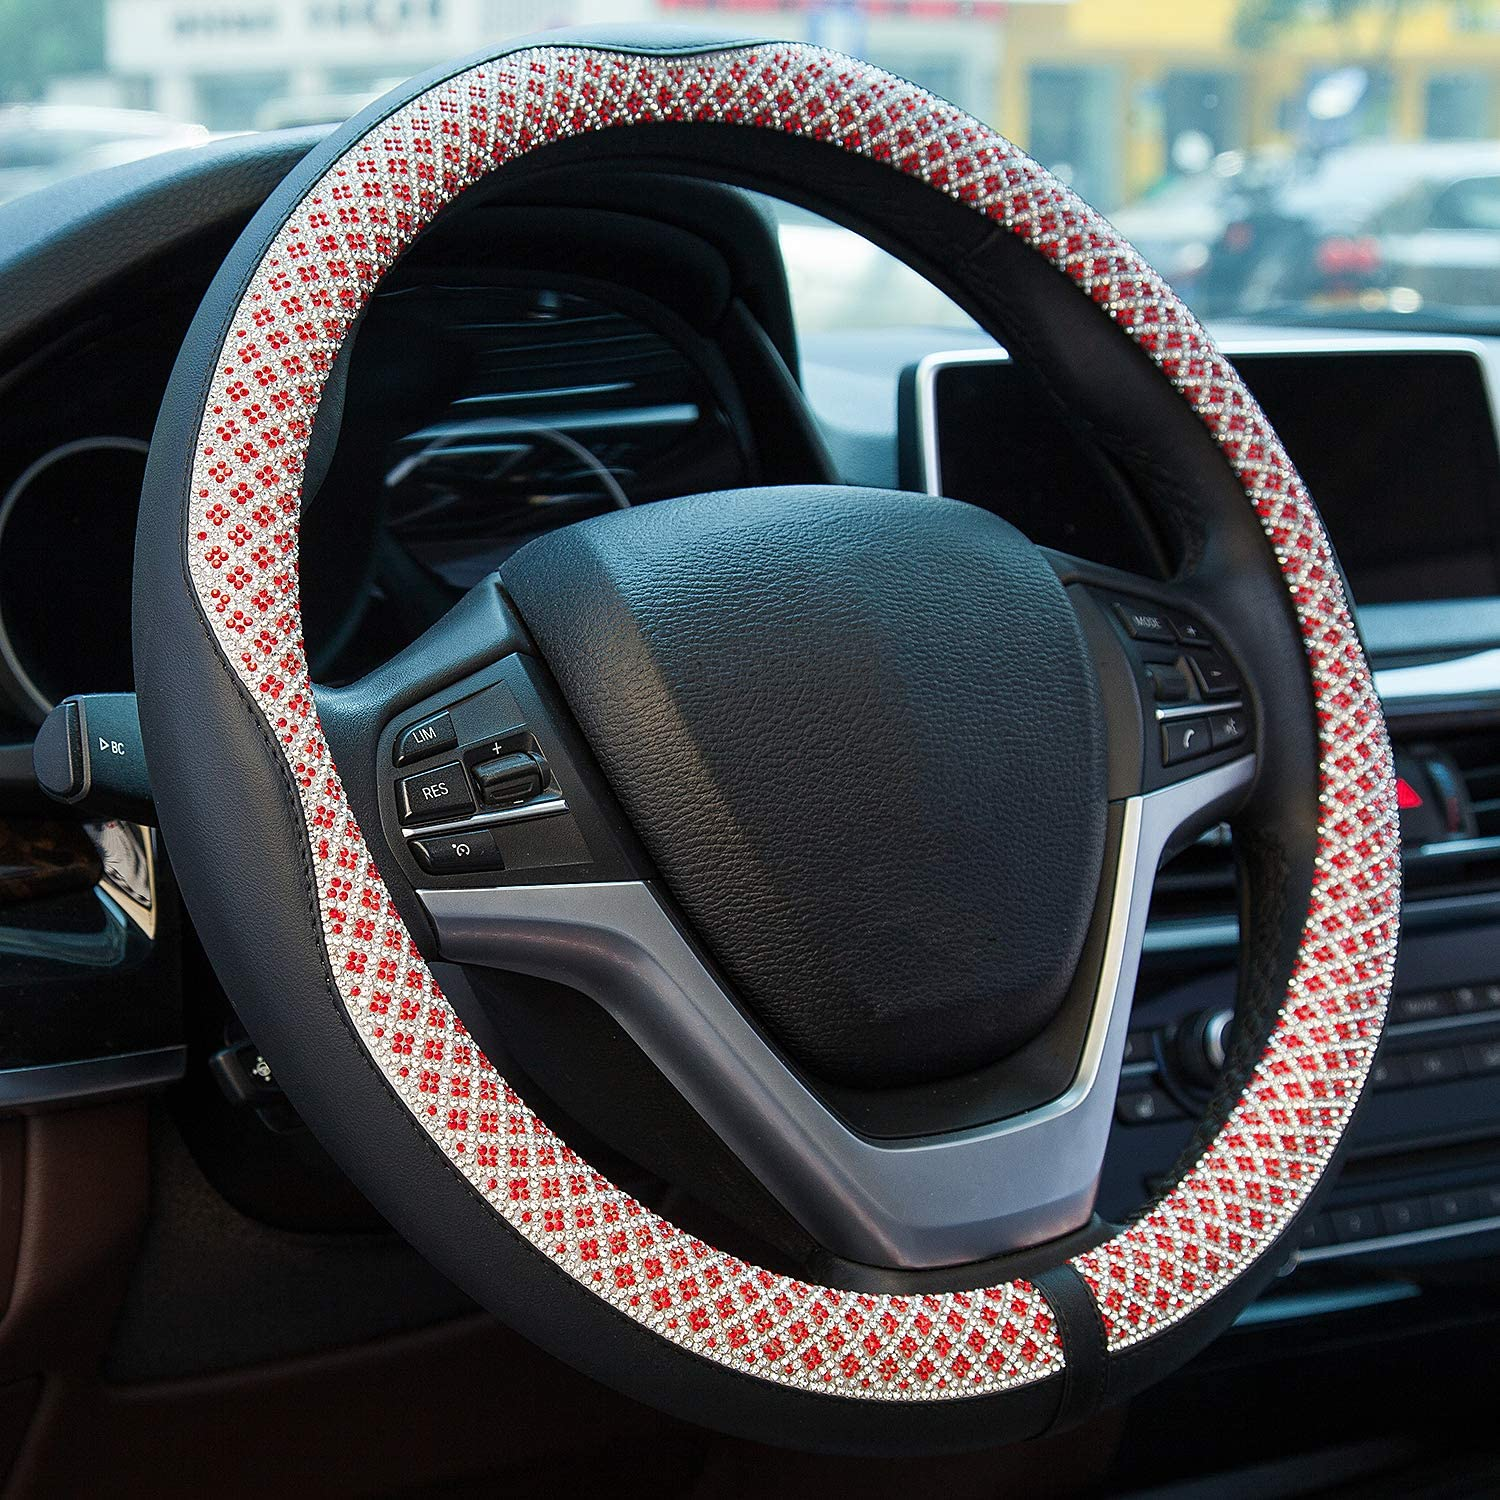 Valleycomfy Universal 15 inch Diamond Crystal Leather Steering Wheel Cover for HRV CRV Accord Corolla Prius Rav4 Tacoma Camry X1 X3 X5 335i 535i,etc Red